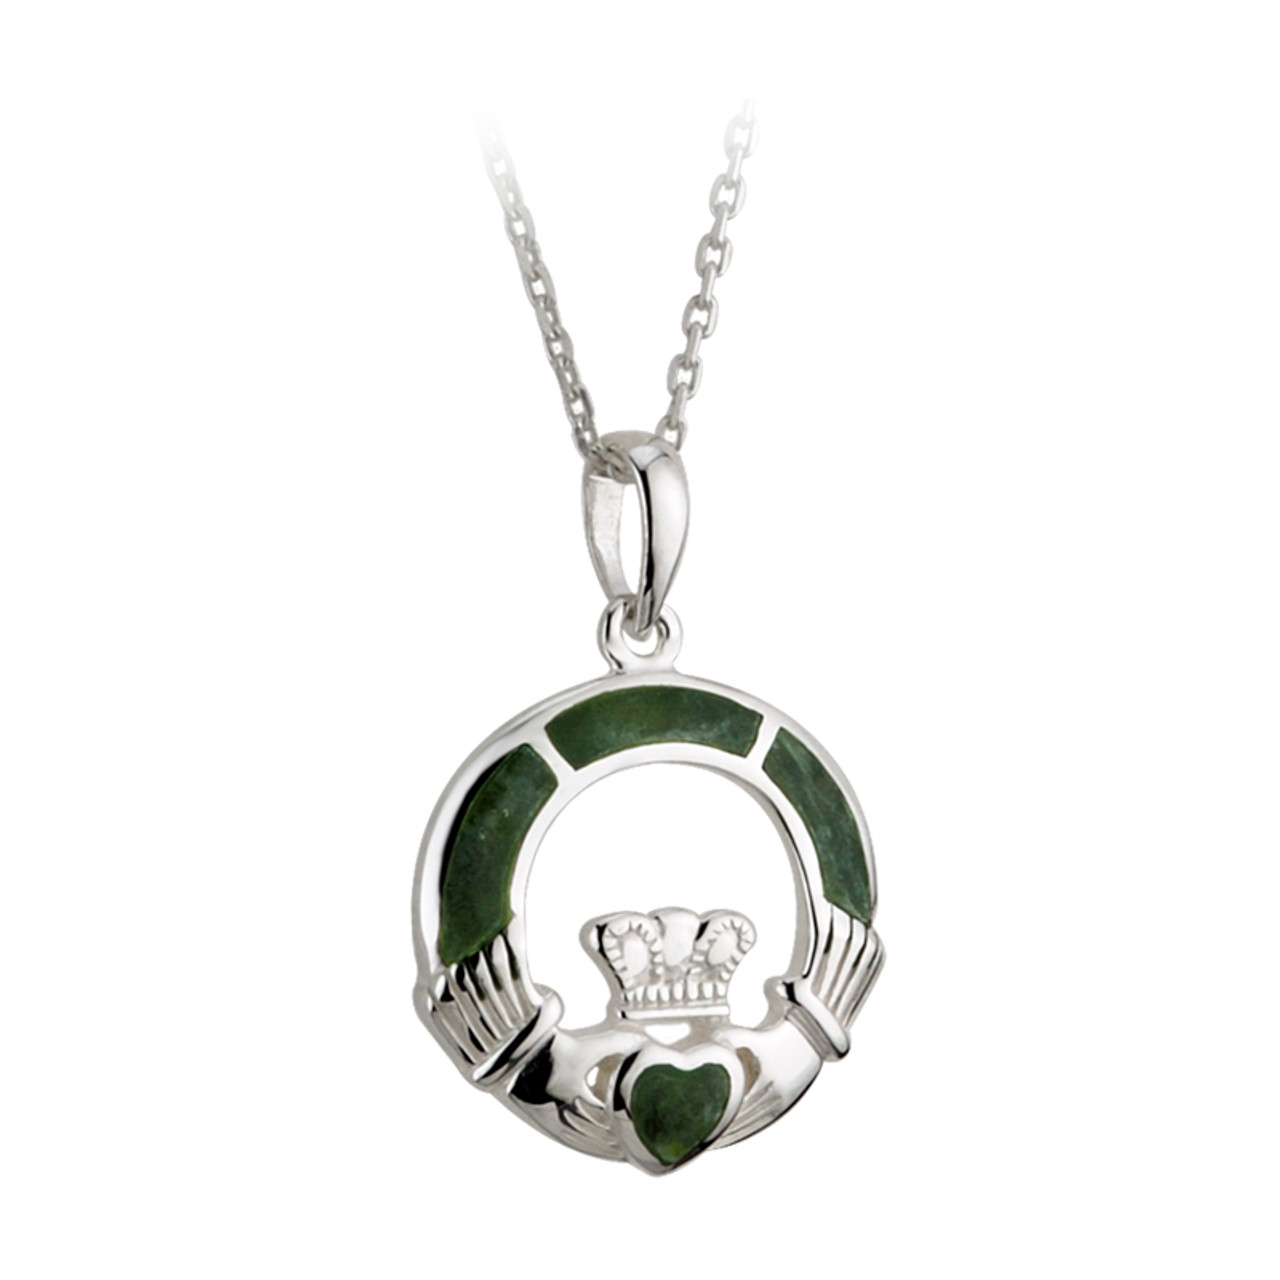 irish claddagh chain pastandpresentjewelry on product silver pendant ext celtic shop amethyst view artfire w handcast